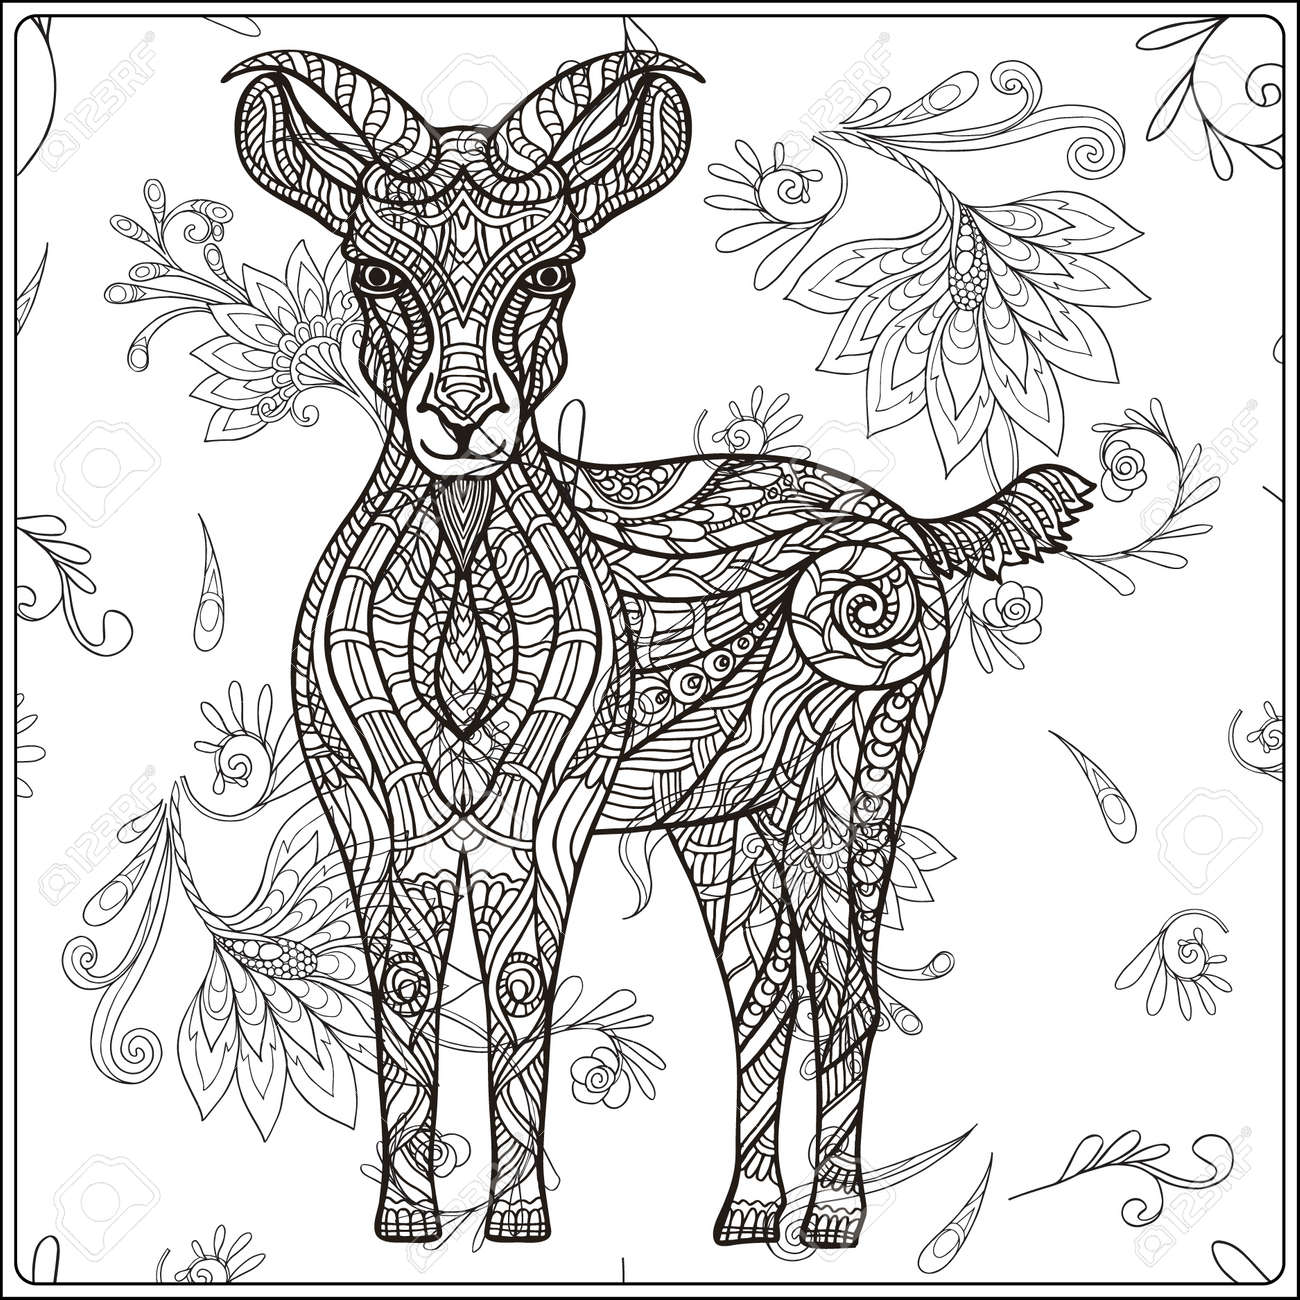 Goat On Floral Background Coloring Book For Adult And Older Children Page